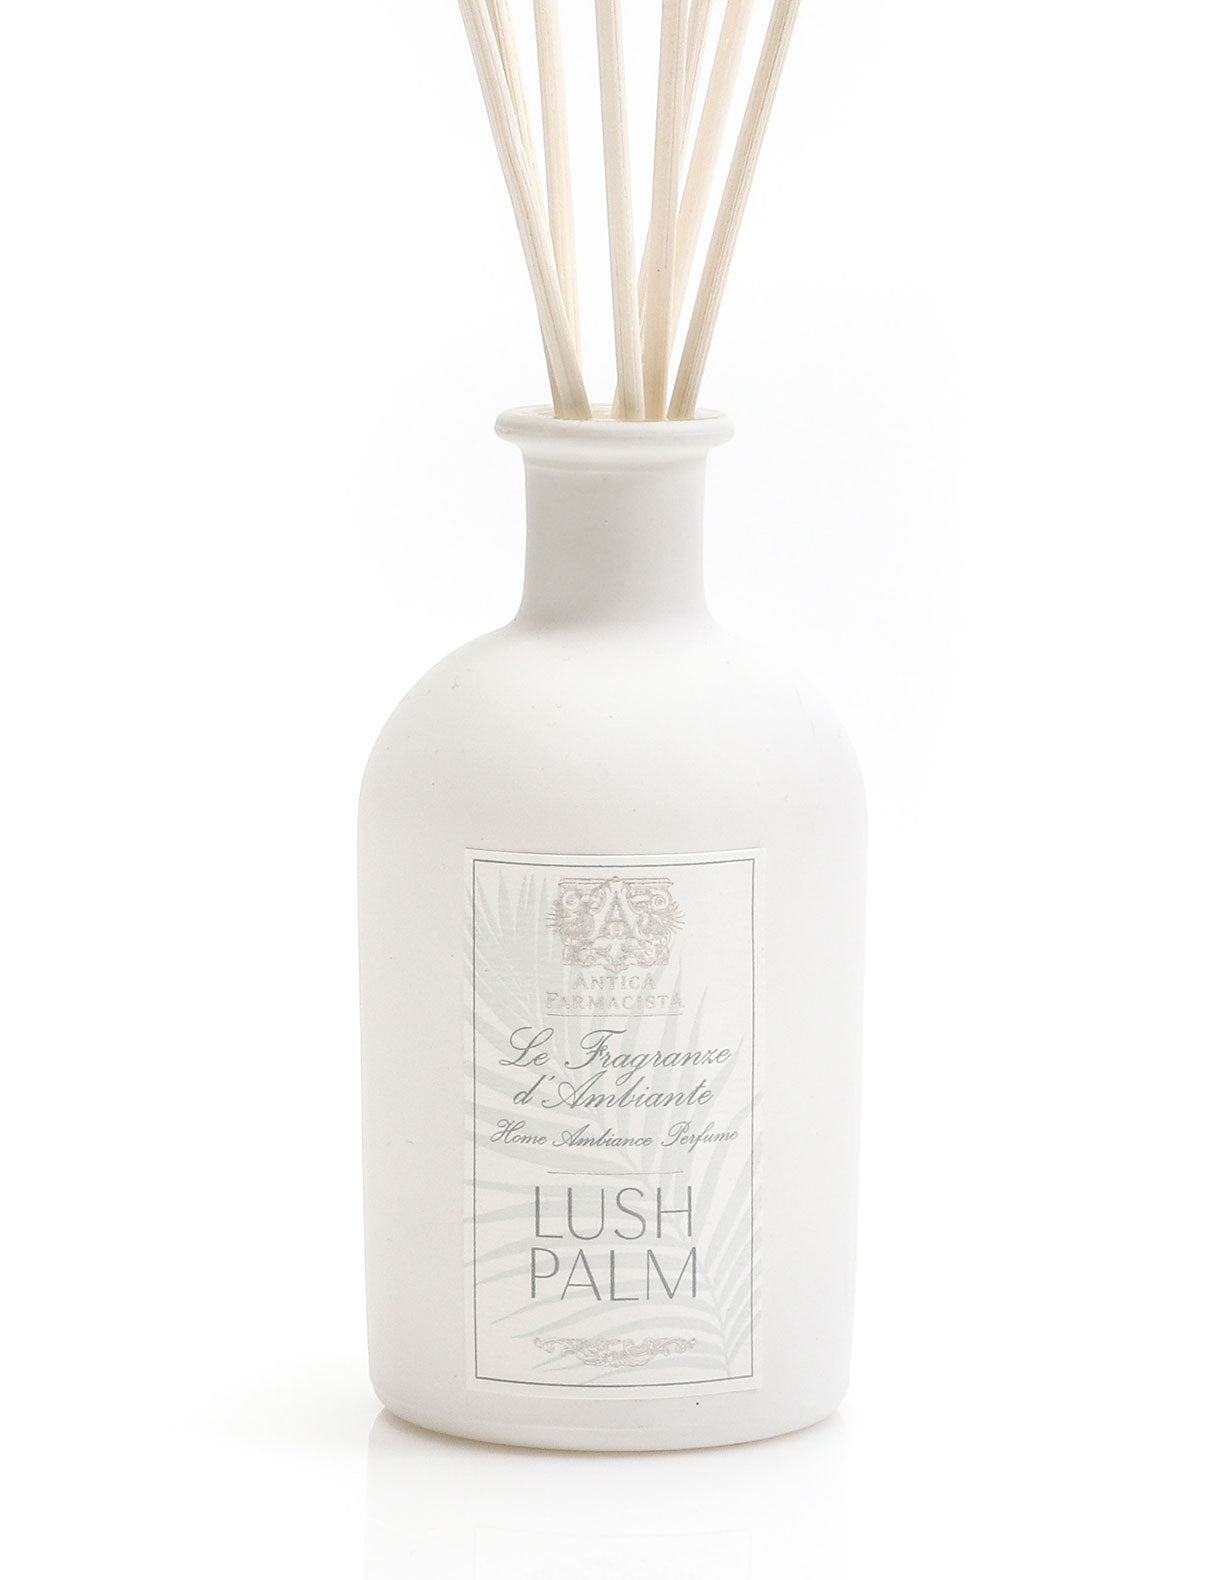 ANTICA FARMACISTA - 250ML DIFFUSER IN LUSH PALM